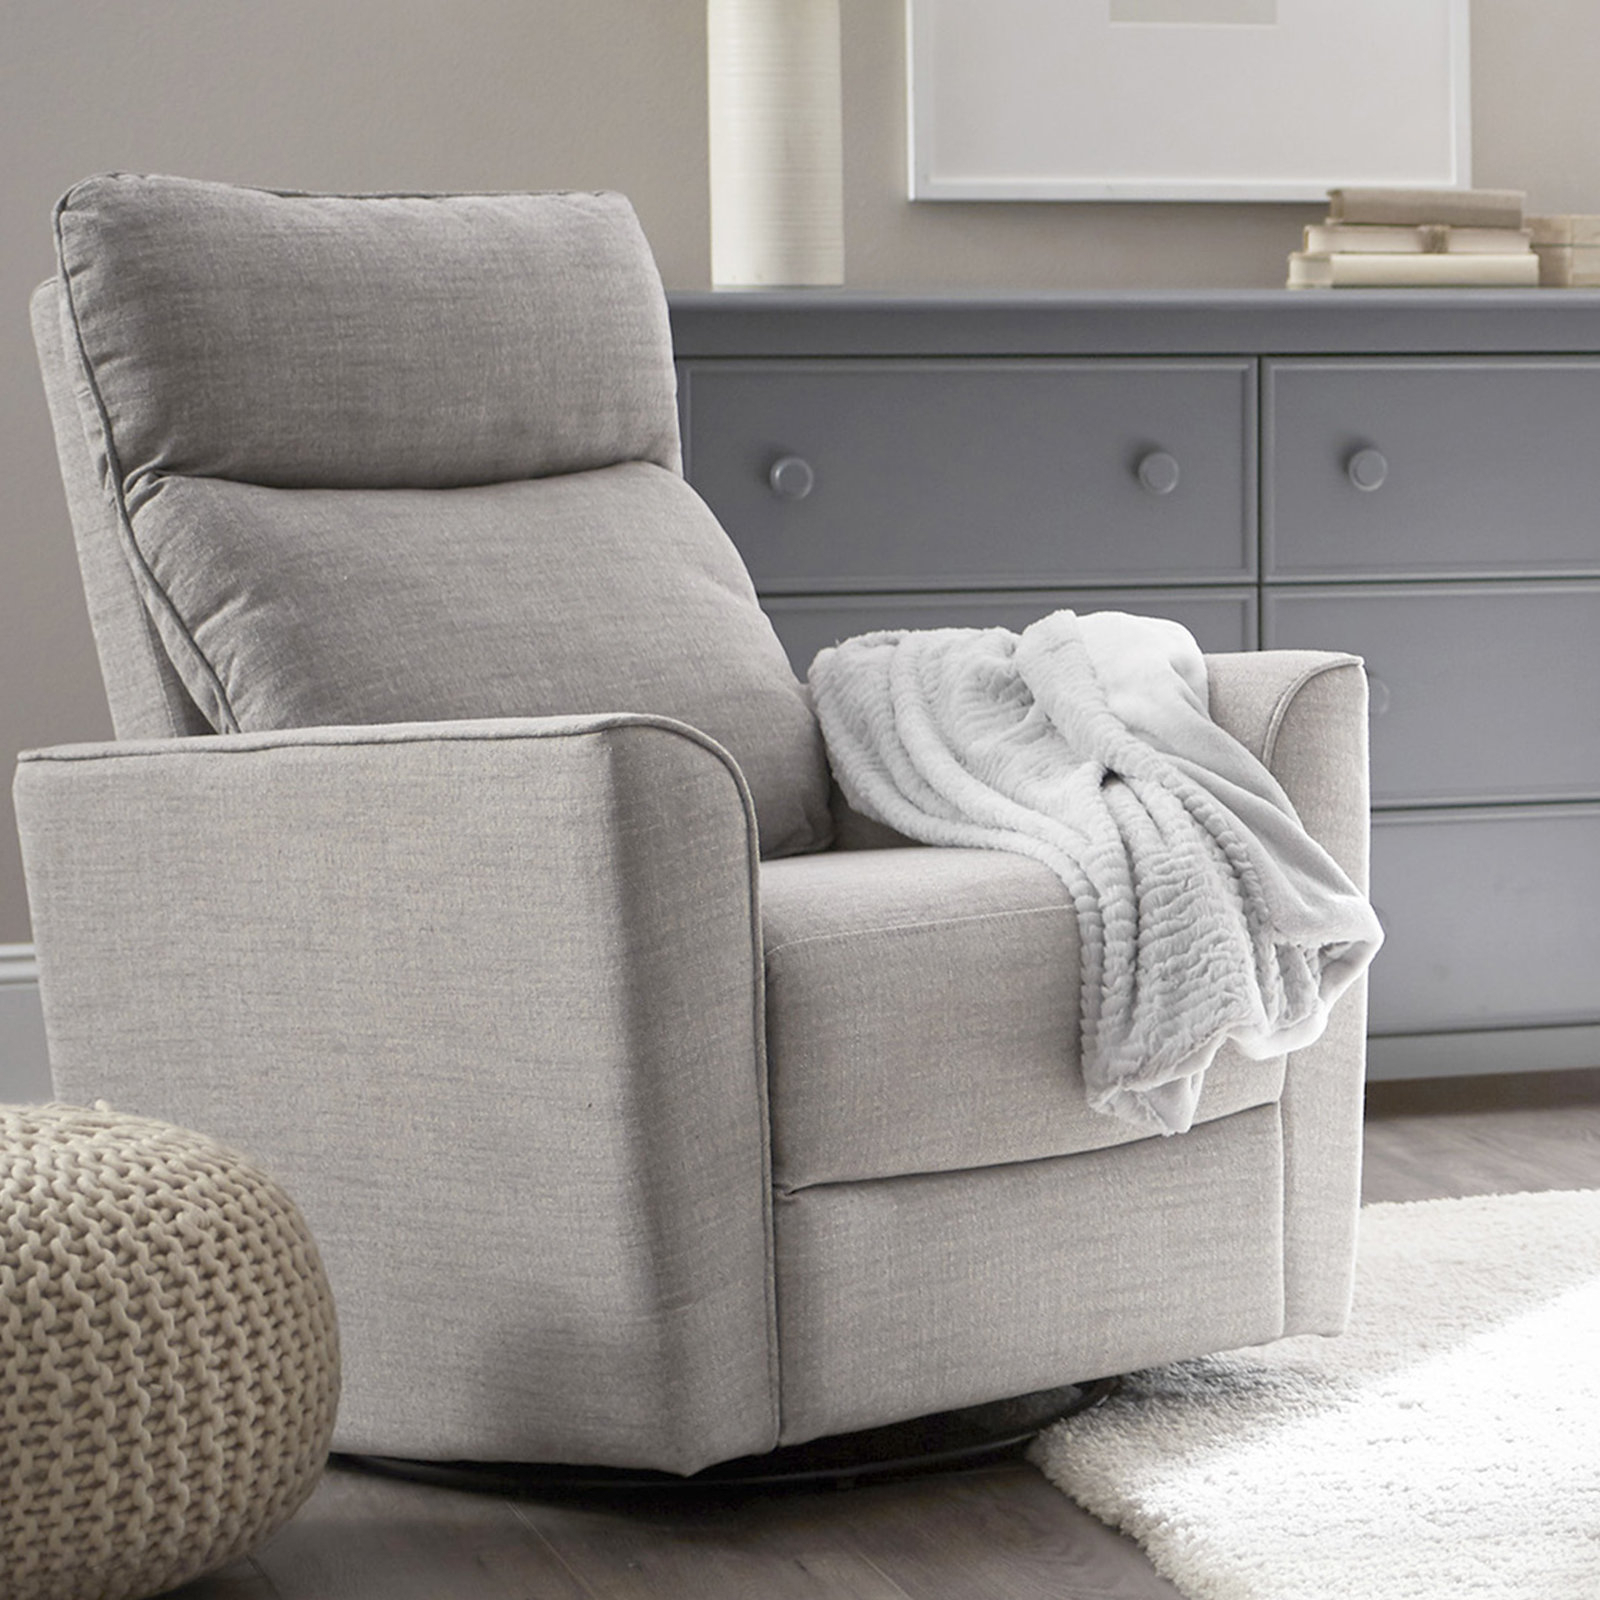 Wayfair For Mari Swivel Glider Recliners (View 3 of 20)